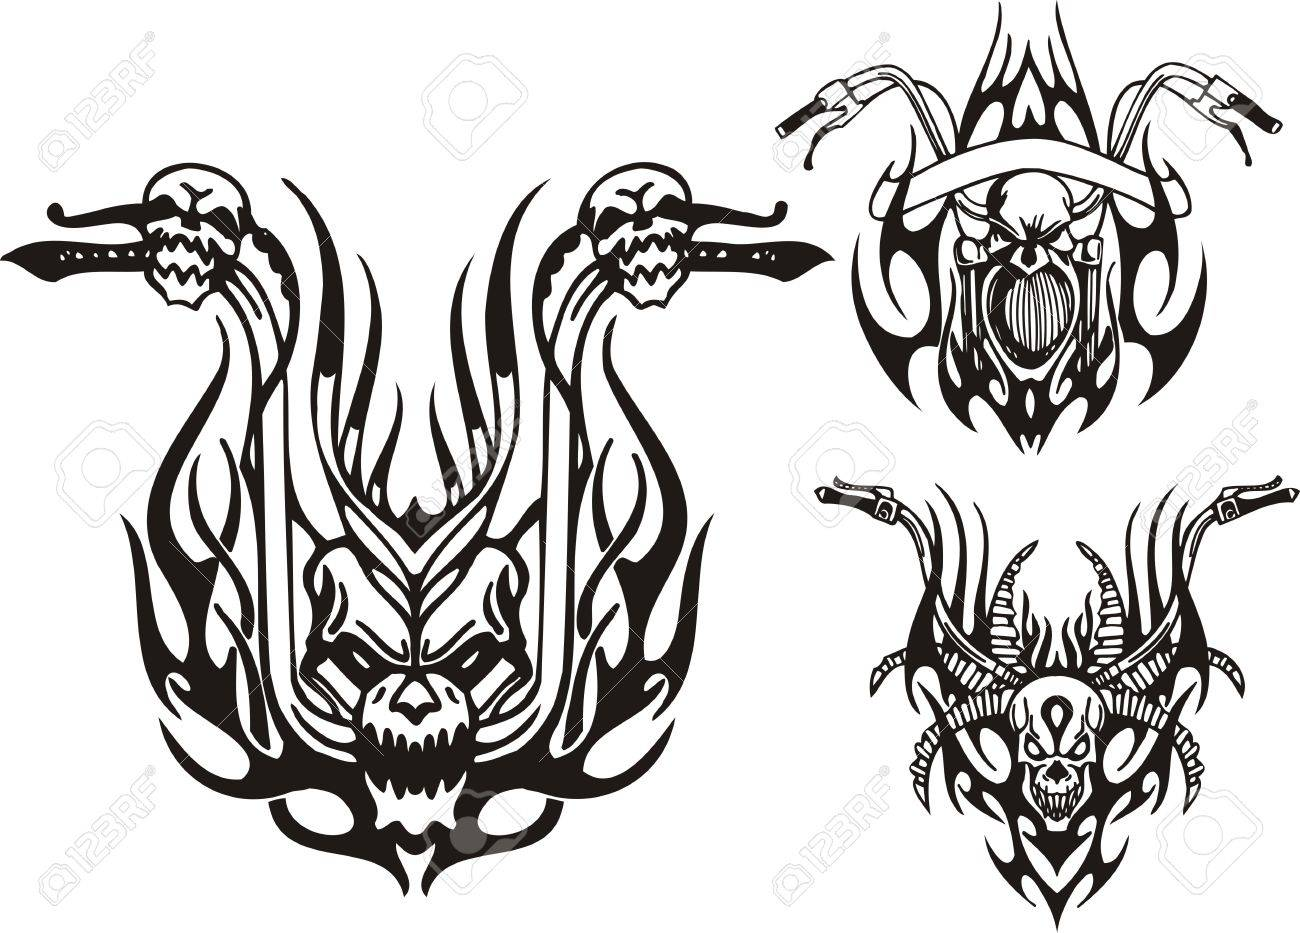 Three wheels of a motorcycle. Tribal bikes. Vector illustration ready for vinyl cutting. Stock Vector - 8758259